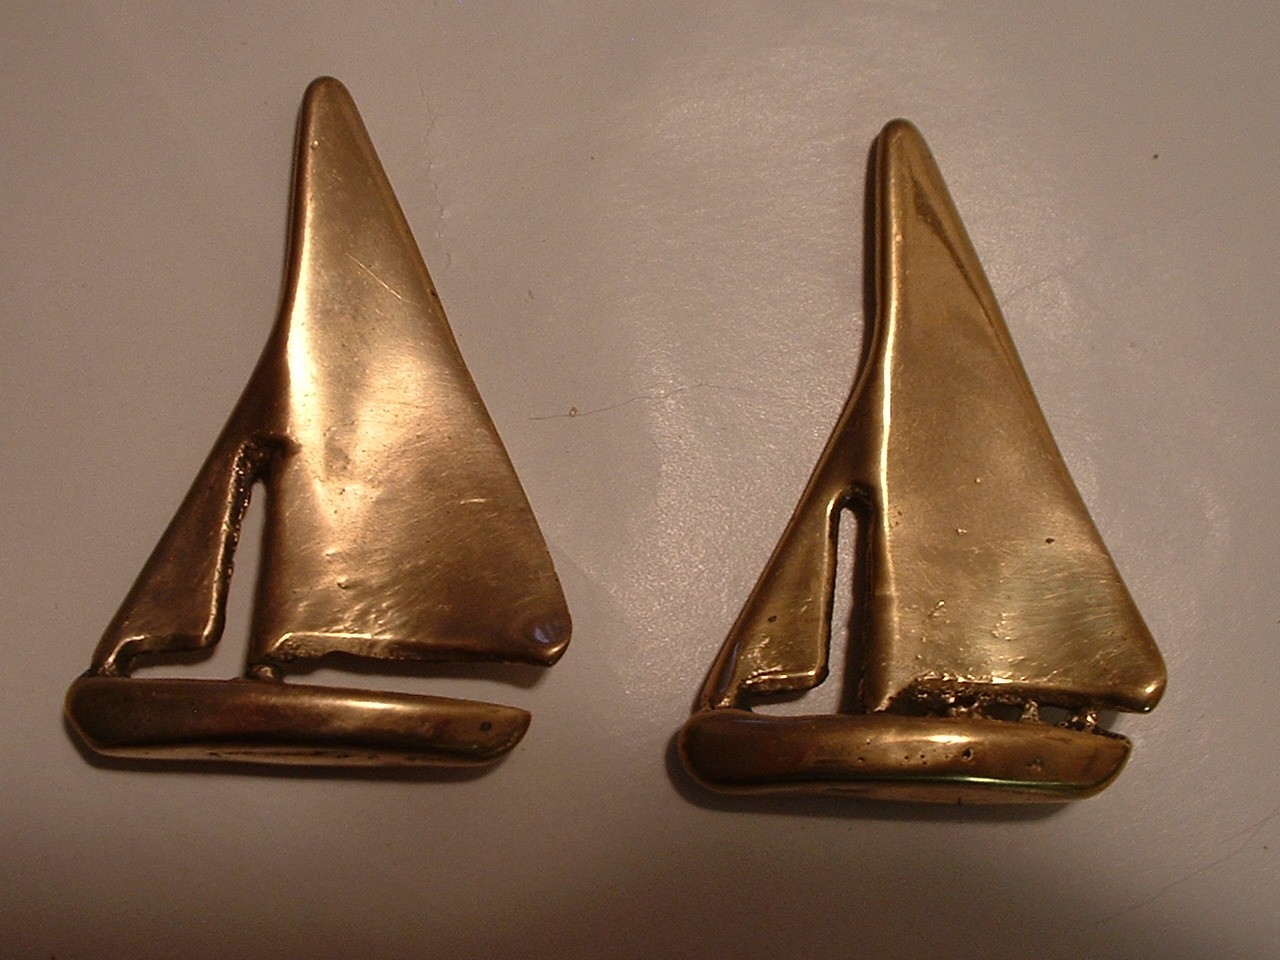 Vintage Pair of Brass Sail Boats Knick Knacks